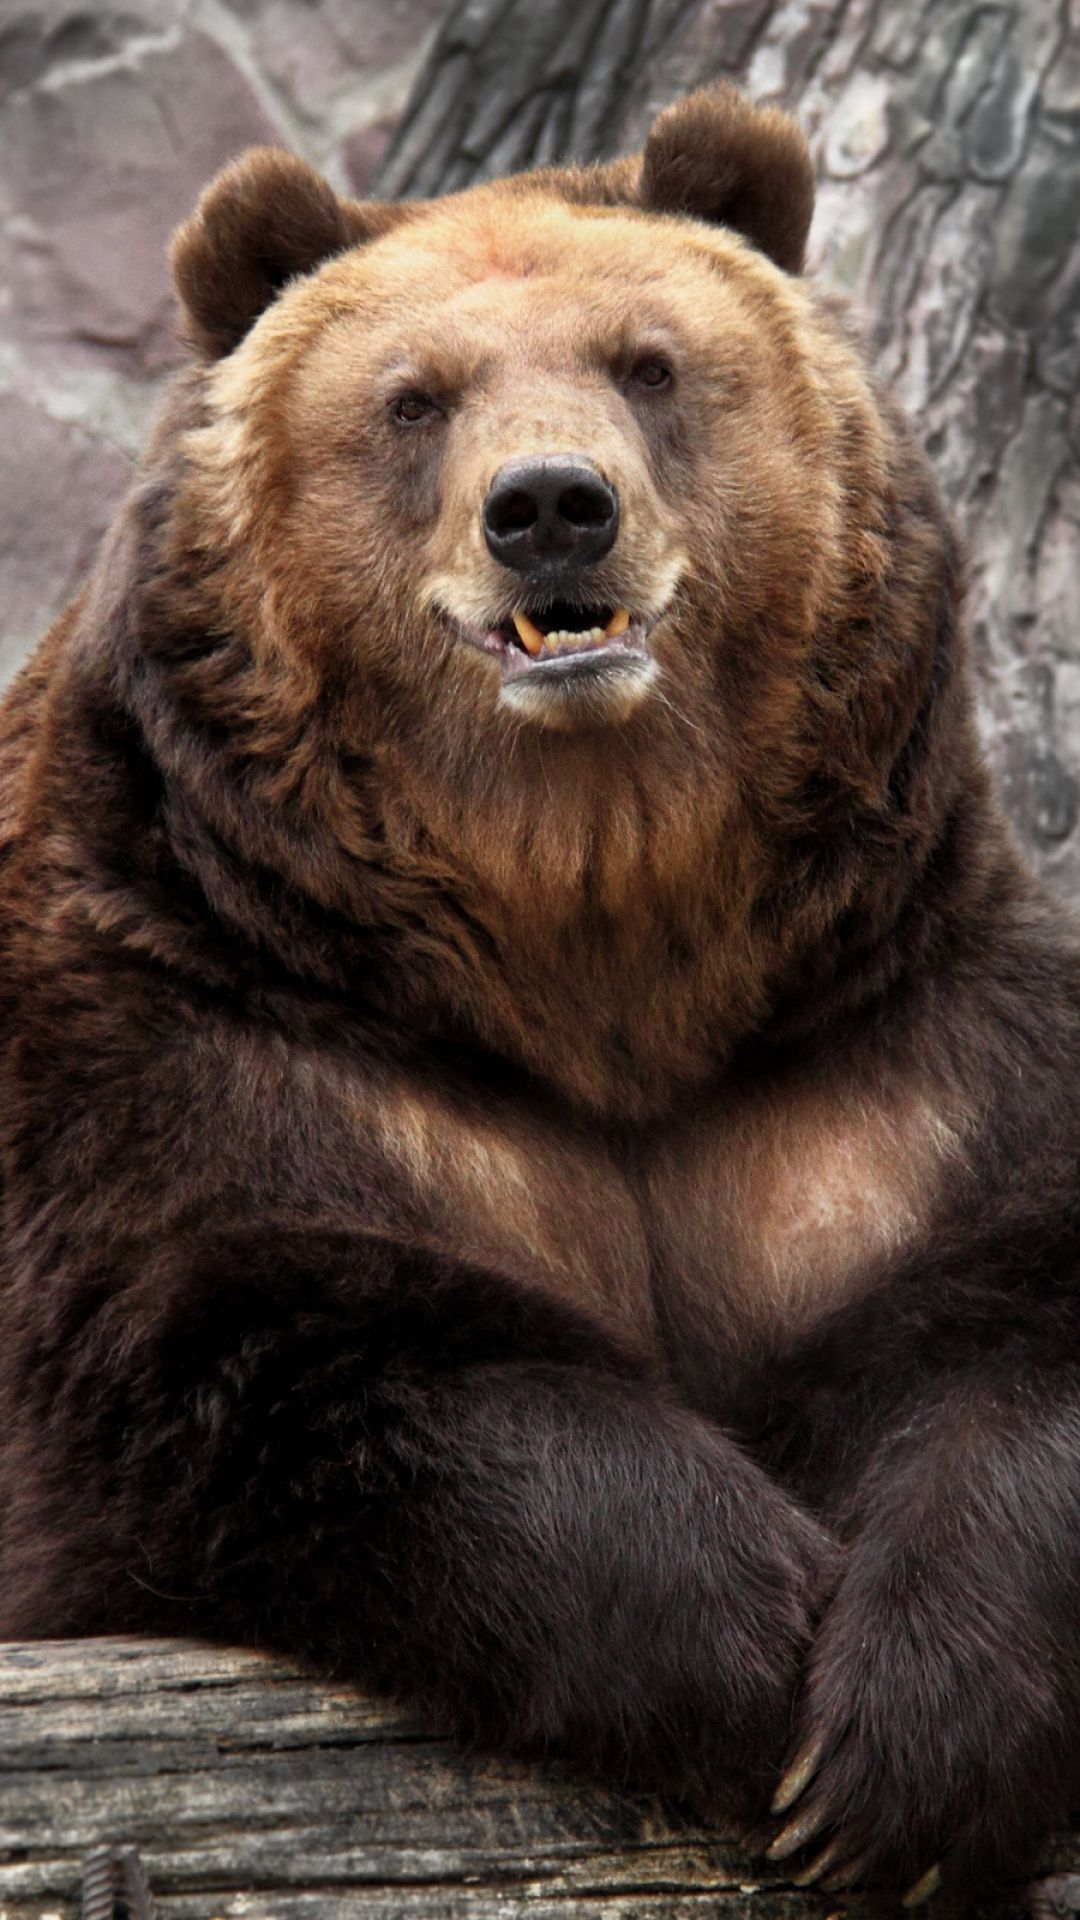 1080x1920 Wallpaper Bear Zoo Nature Reserve Muzzle Bear Zoo